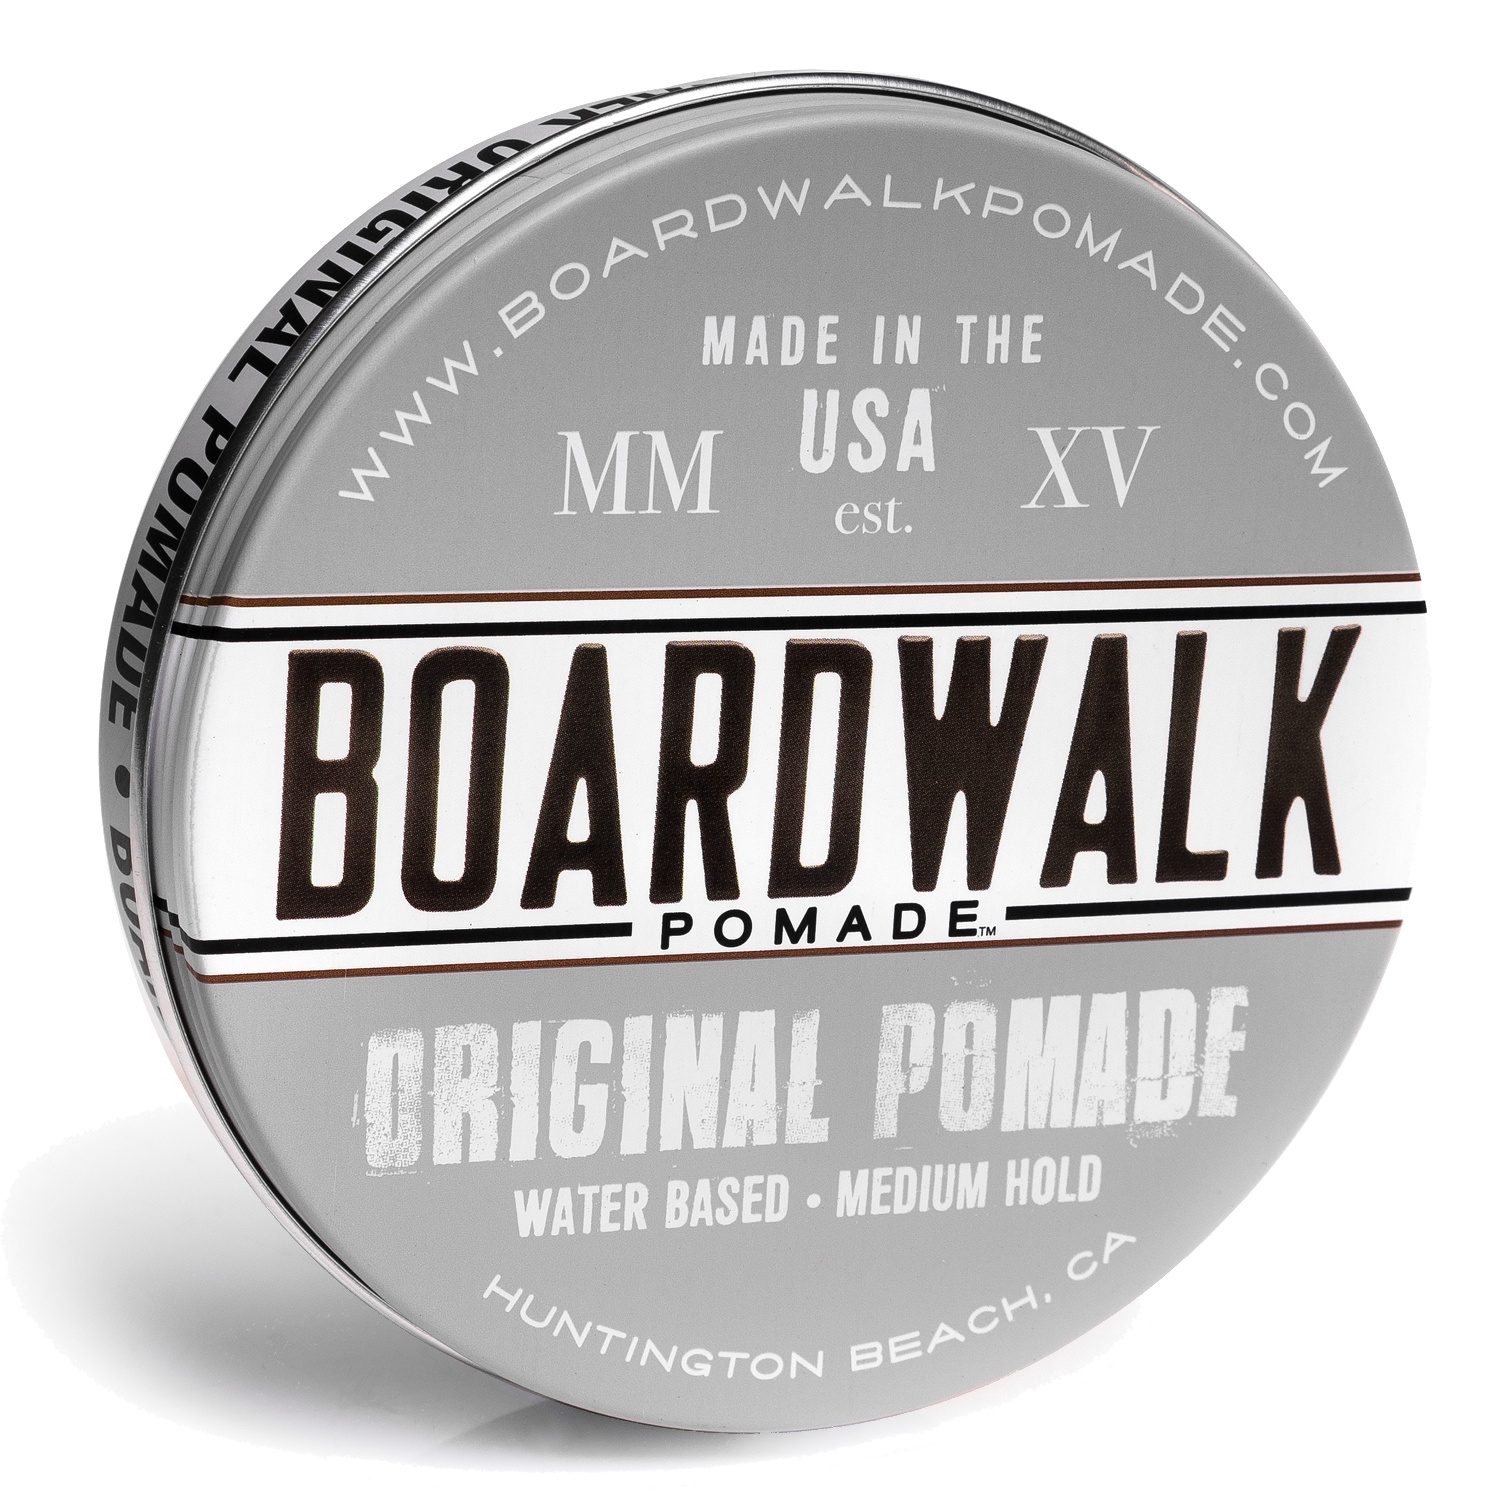 Boardwalk Original Pomade, water based and water soluble, aloe vera pomade, vegan pomade, natural pomade